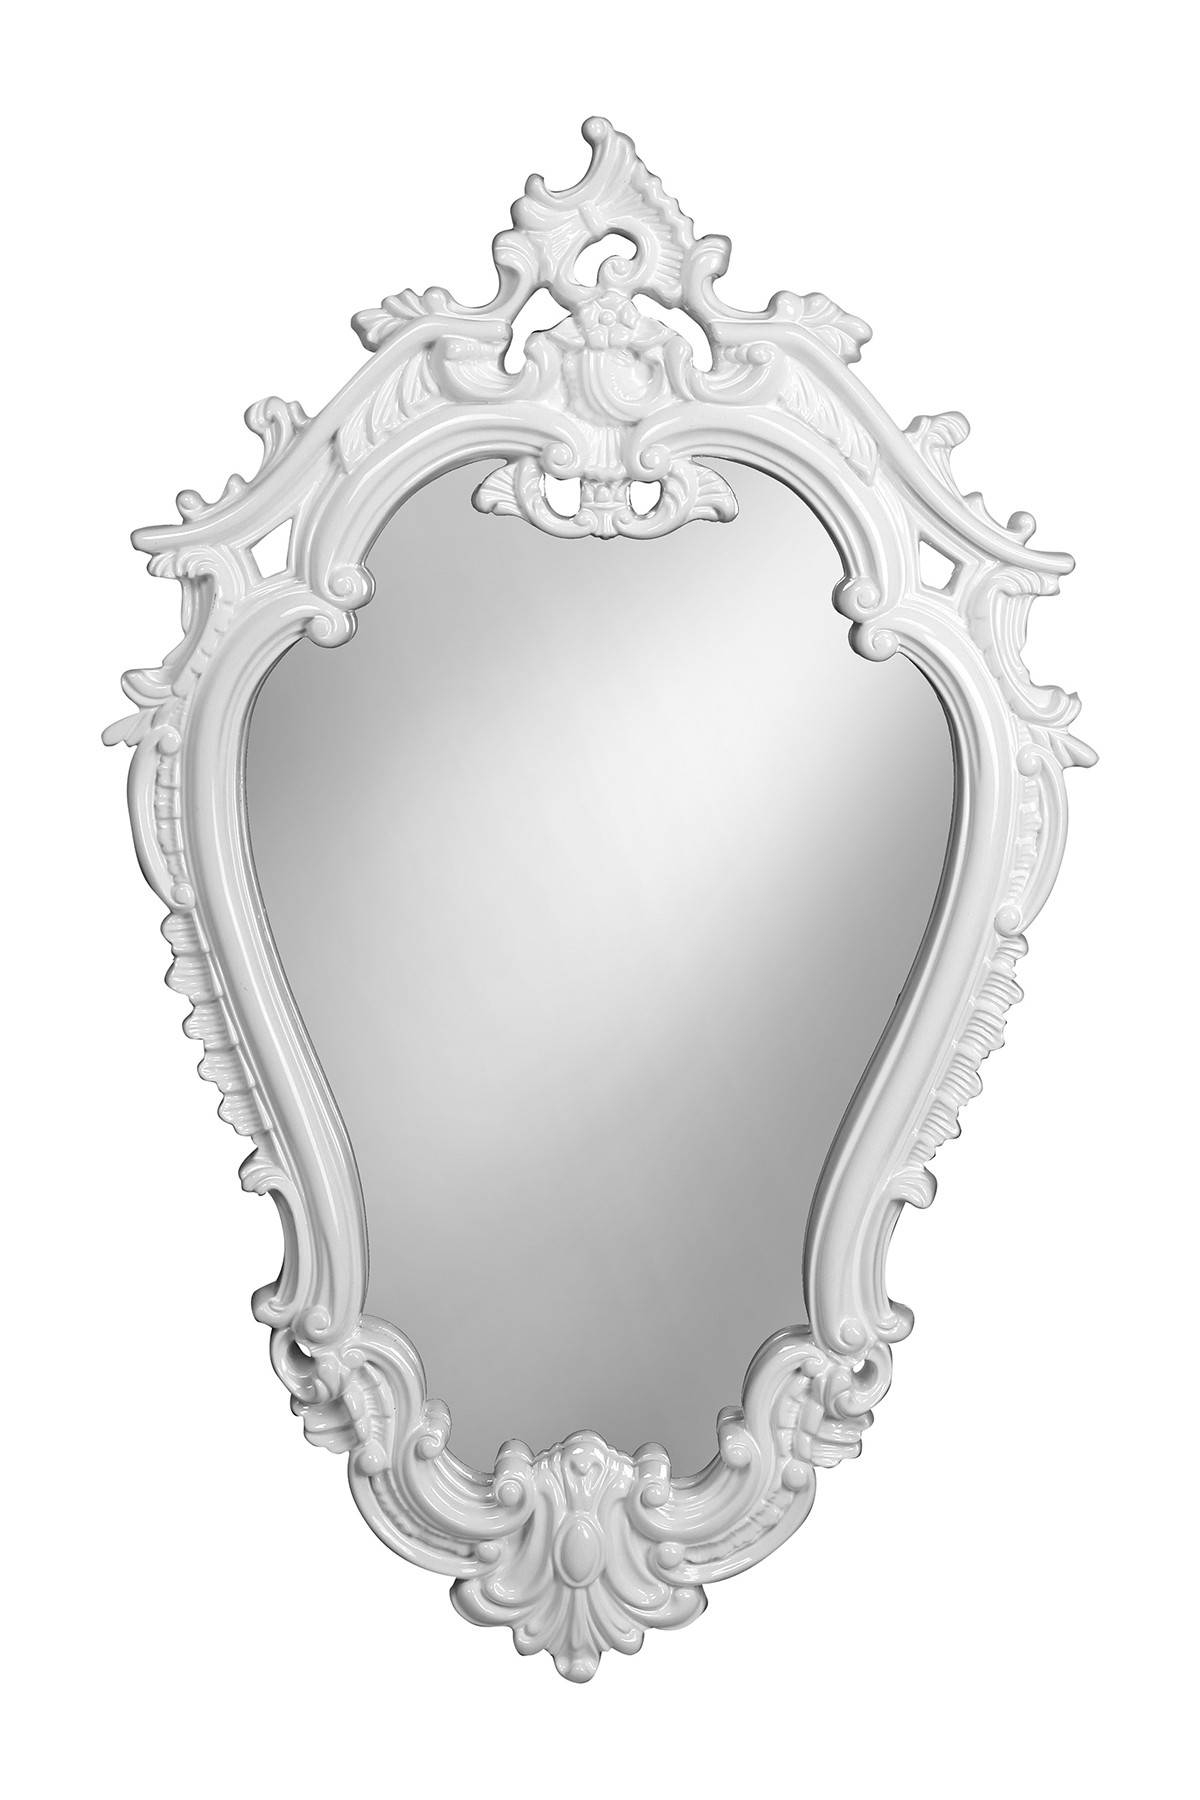 Stylecraft Lighting | Victorian Mirror | Nordstrom Rack with regard to Black Victorian Style Mirrors (Image 11 of 15)